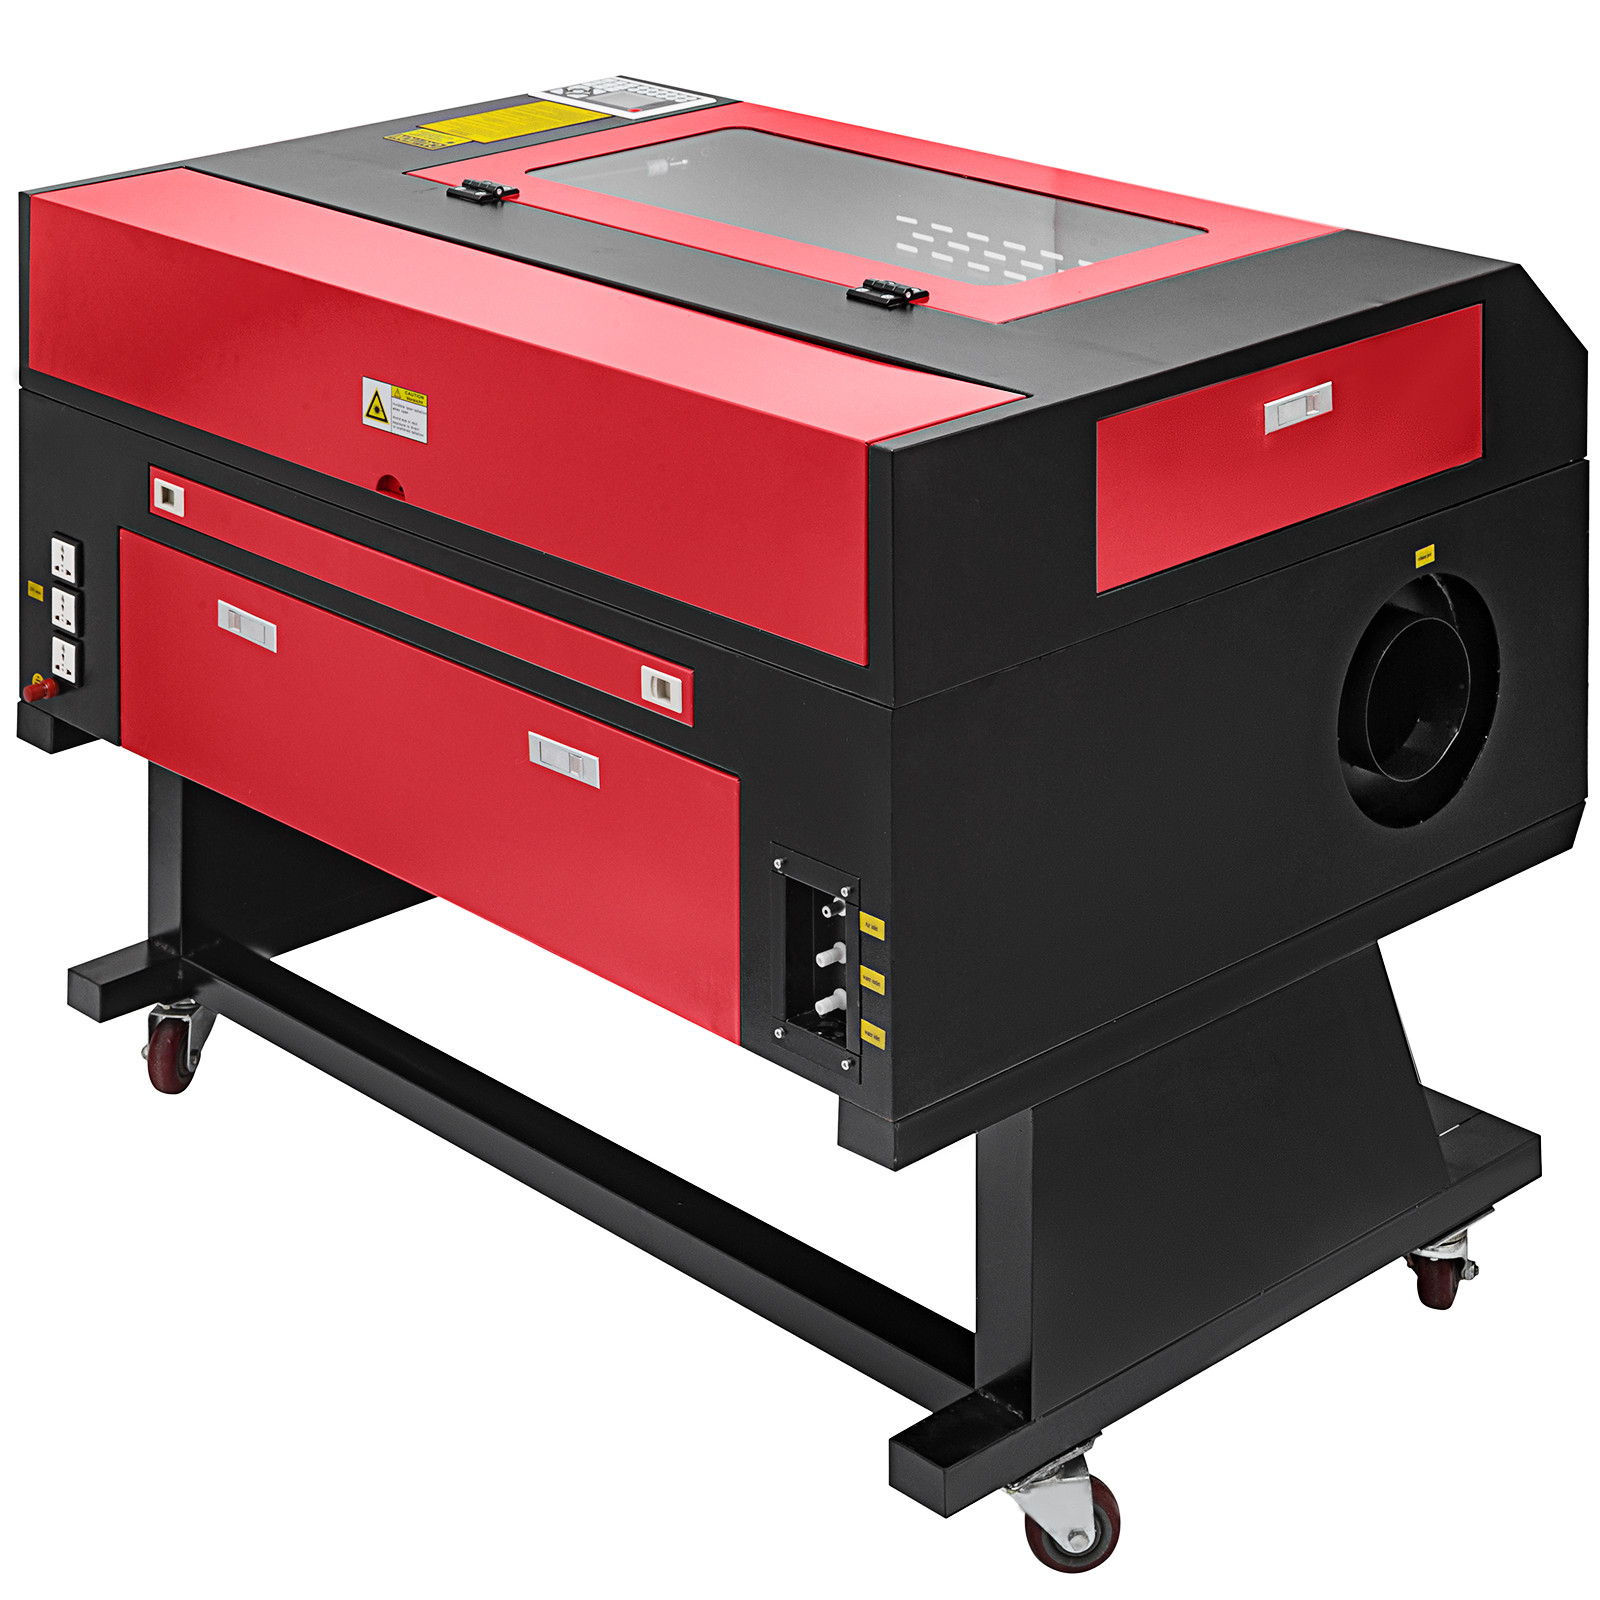 CO2-Usb-Laser-Engraving-Cutting-Machine-Engraver-Cutter-Air-Assist-Carving thumbnail 51